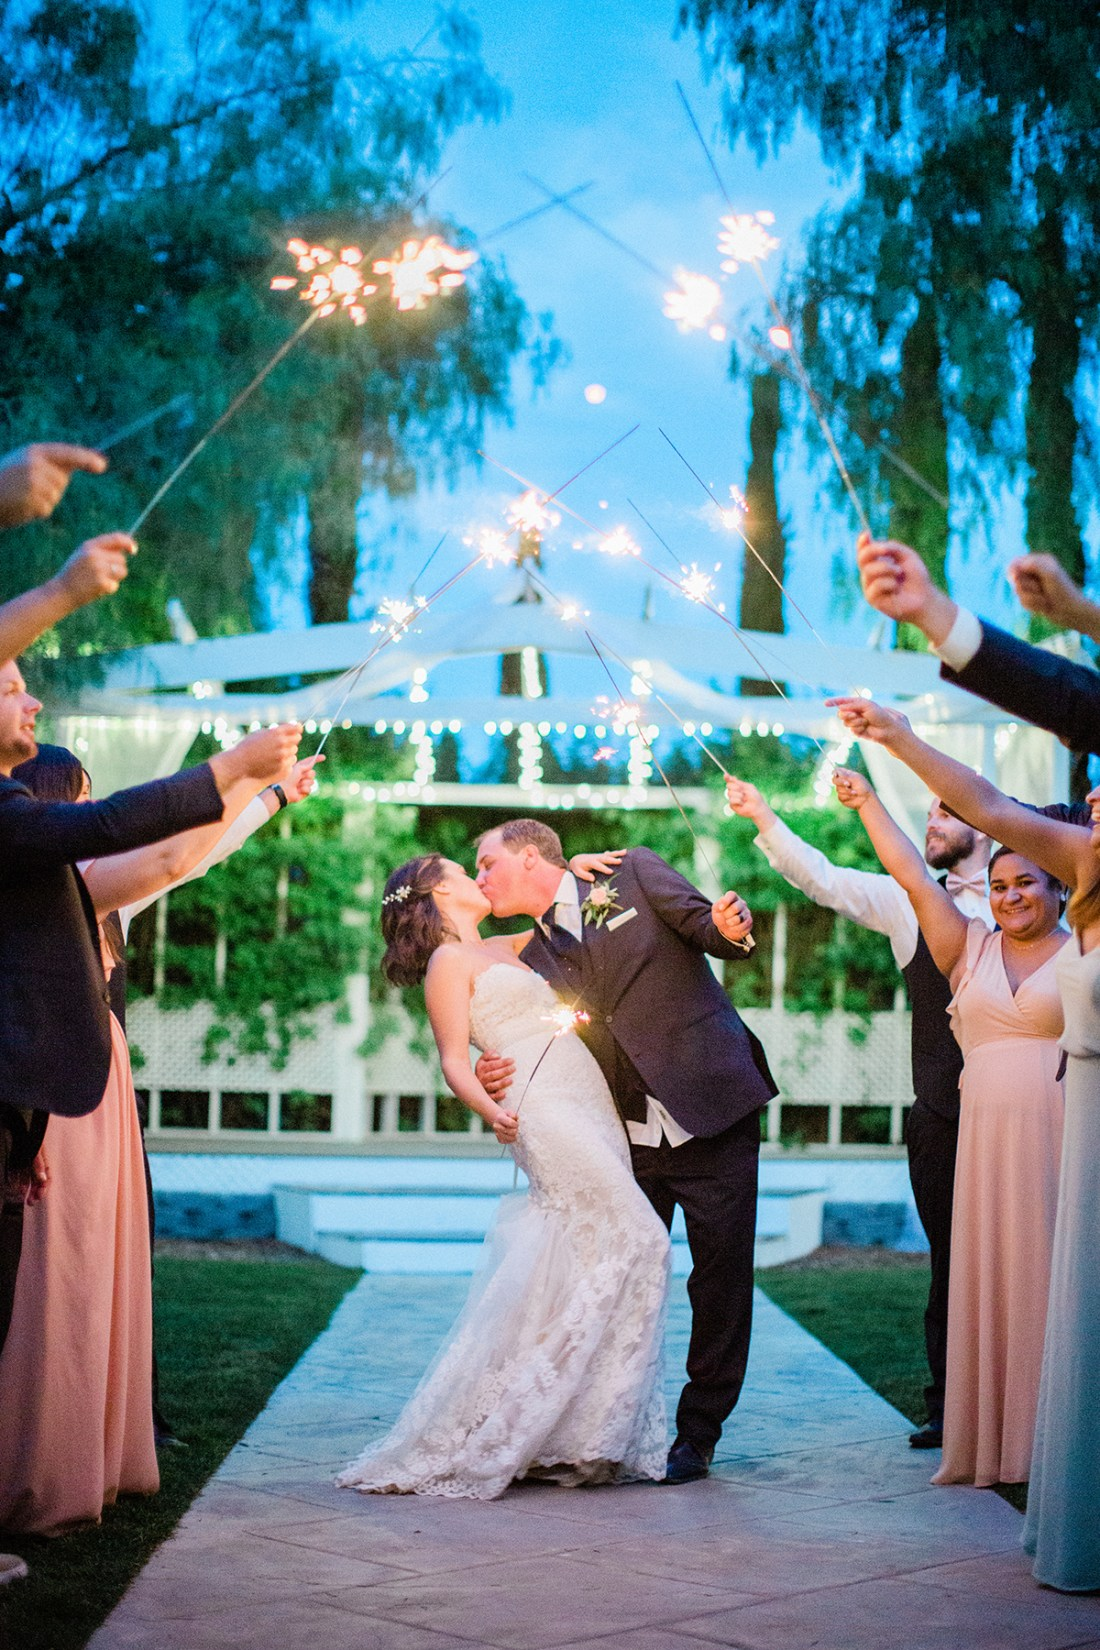 Wedding Grand Exit with Sparklers | A Good Hue